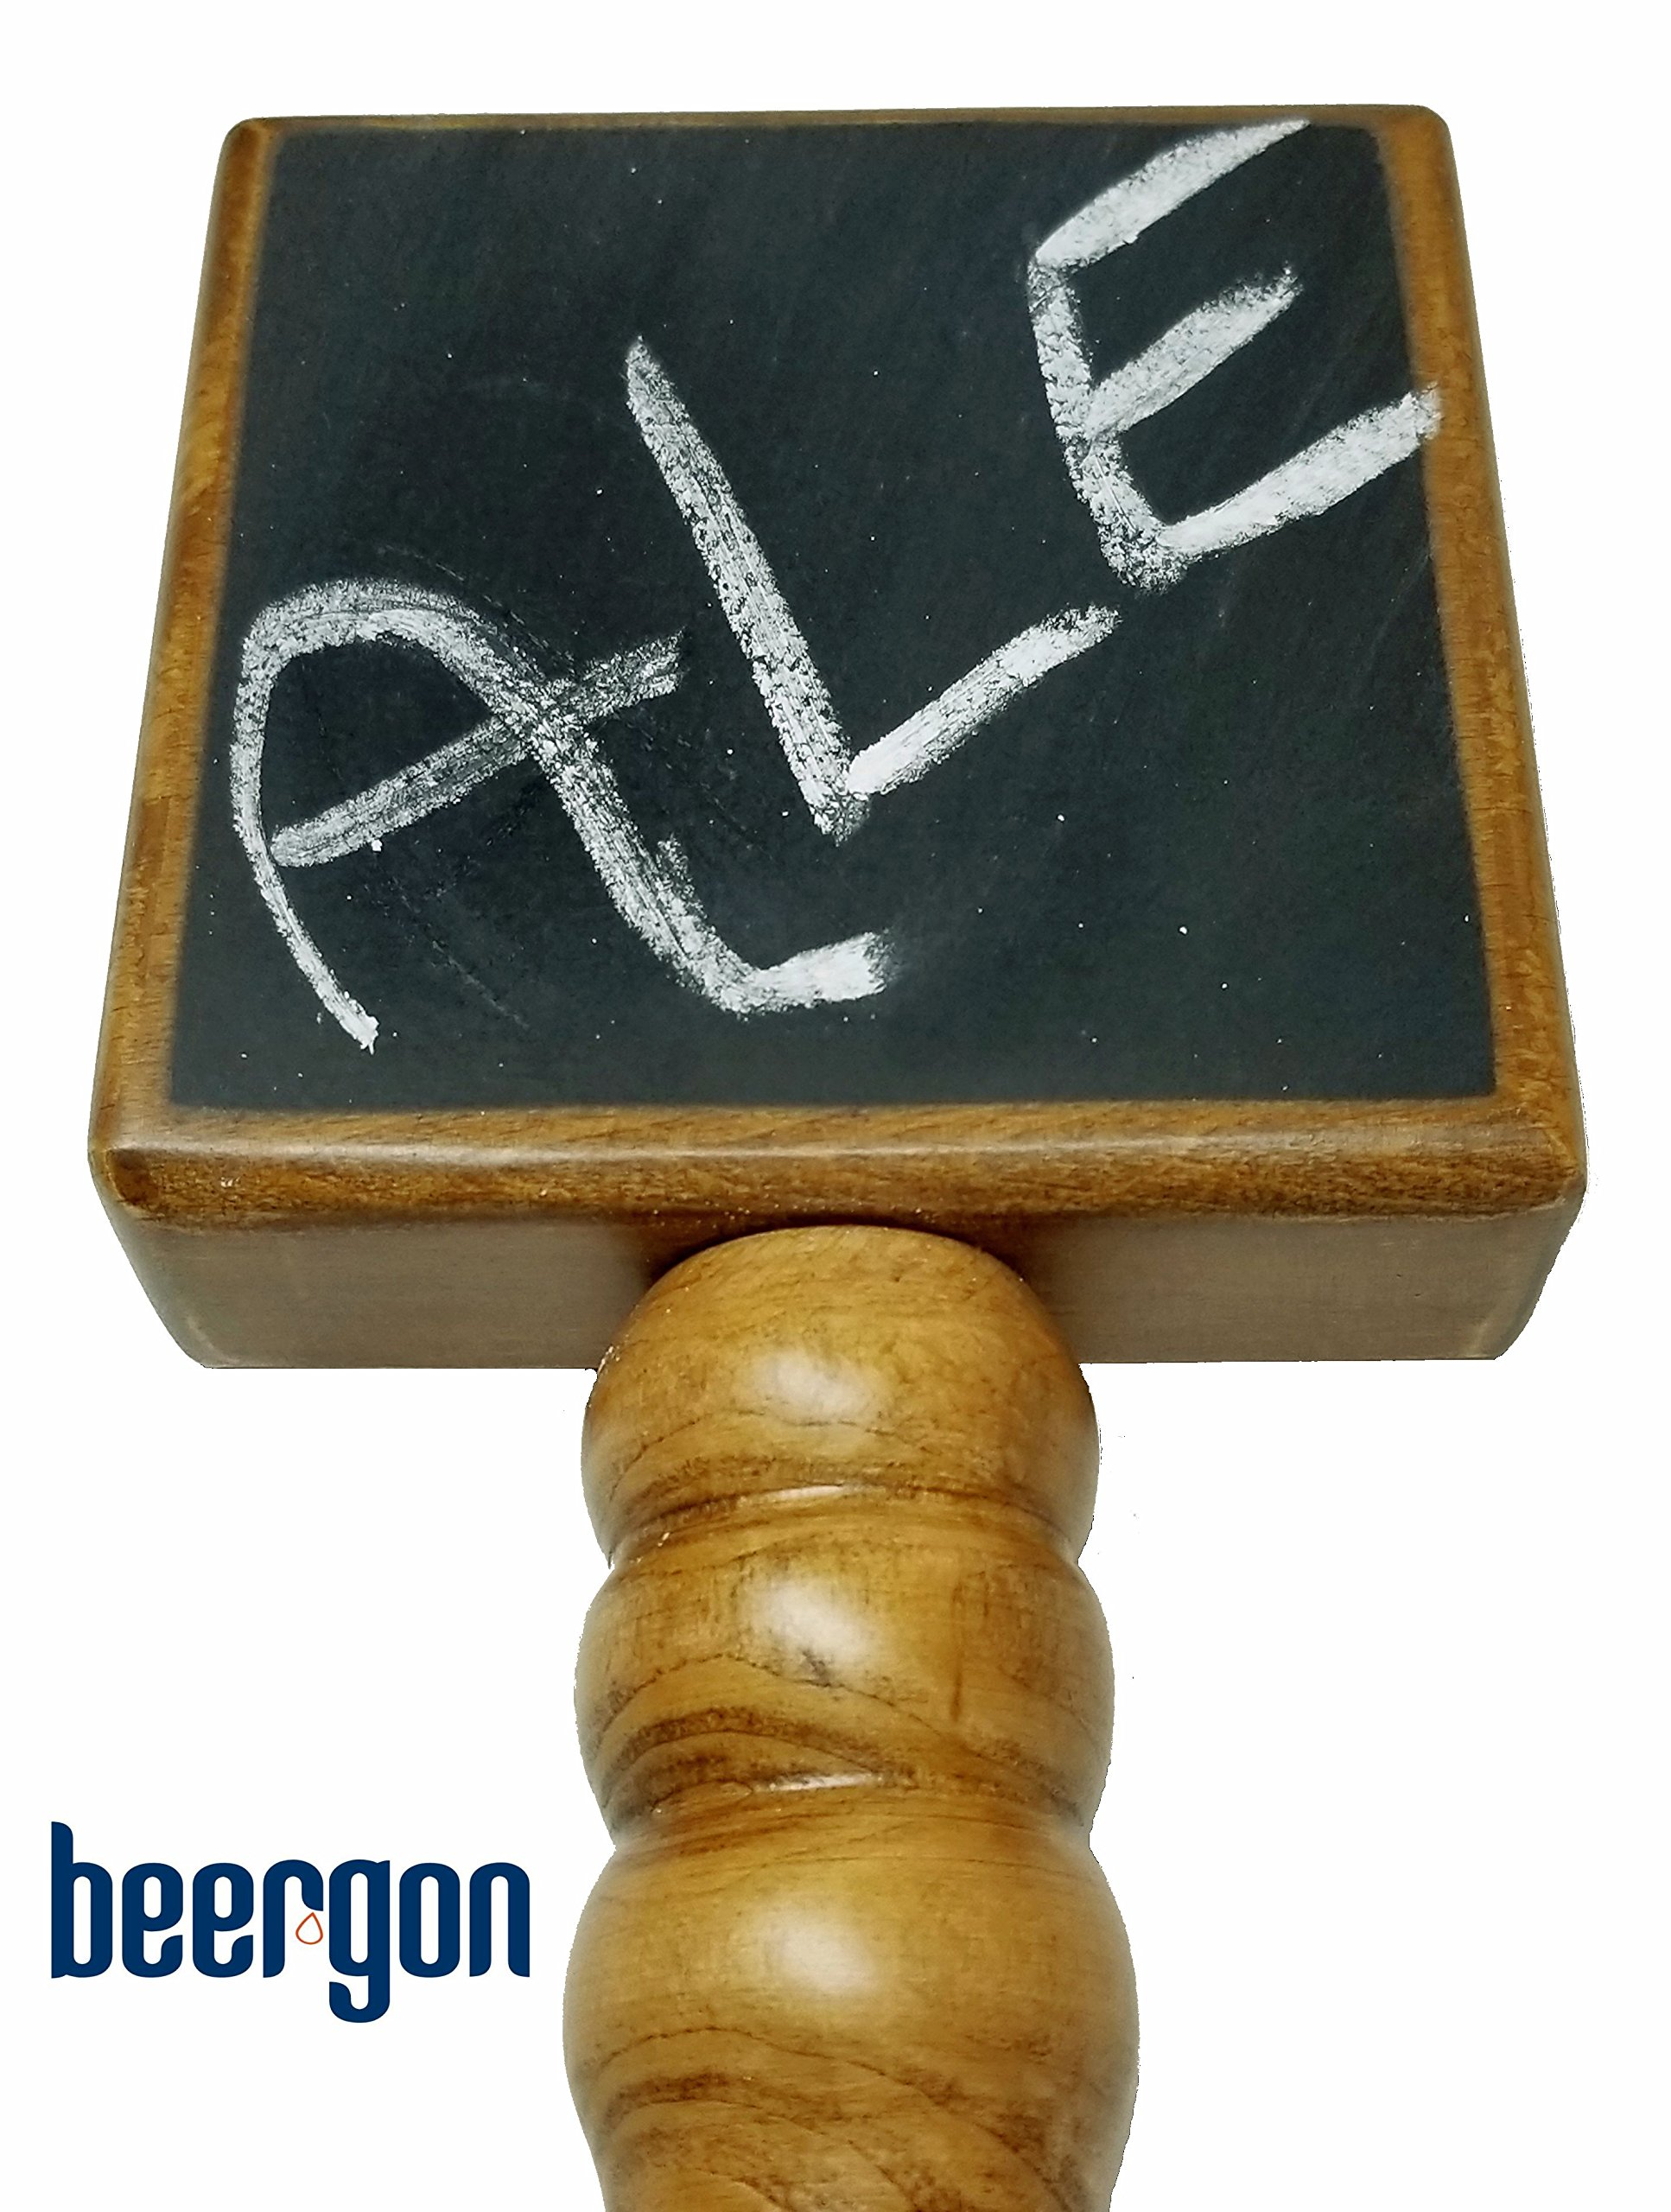 CHALKBOARD BEER TAP HANDLE - NATURAL PREMIUM BEECH AND SCHIMA SUPERBA WOOD (CHERRY STAIN) - EXTRA-LONG 9-INCH BEER FAUCET HANDLE FOR BEER TOWER TAPS - BEERGON (1-PACK) by BEERGON (Image #4)